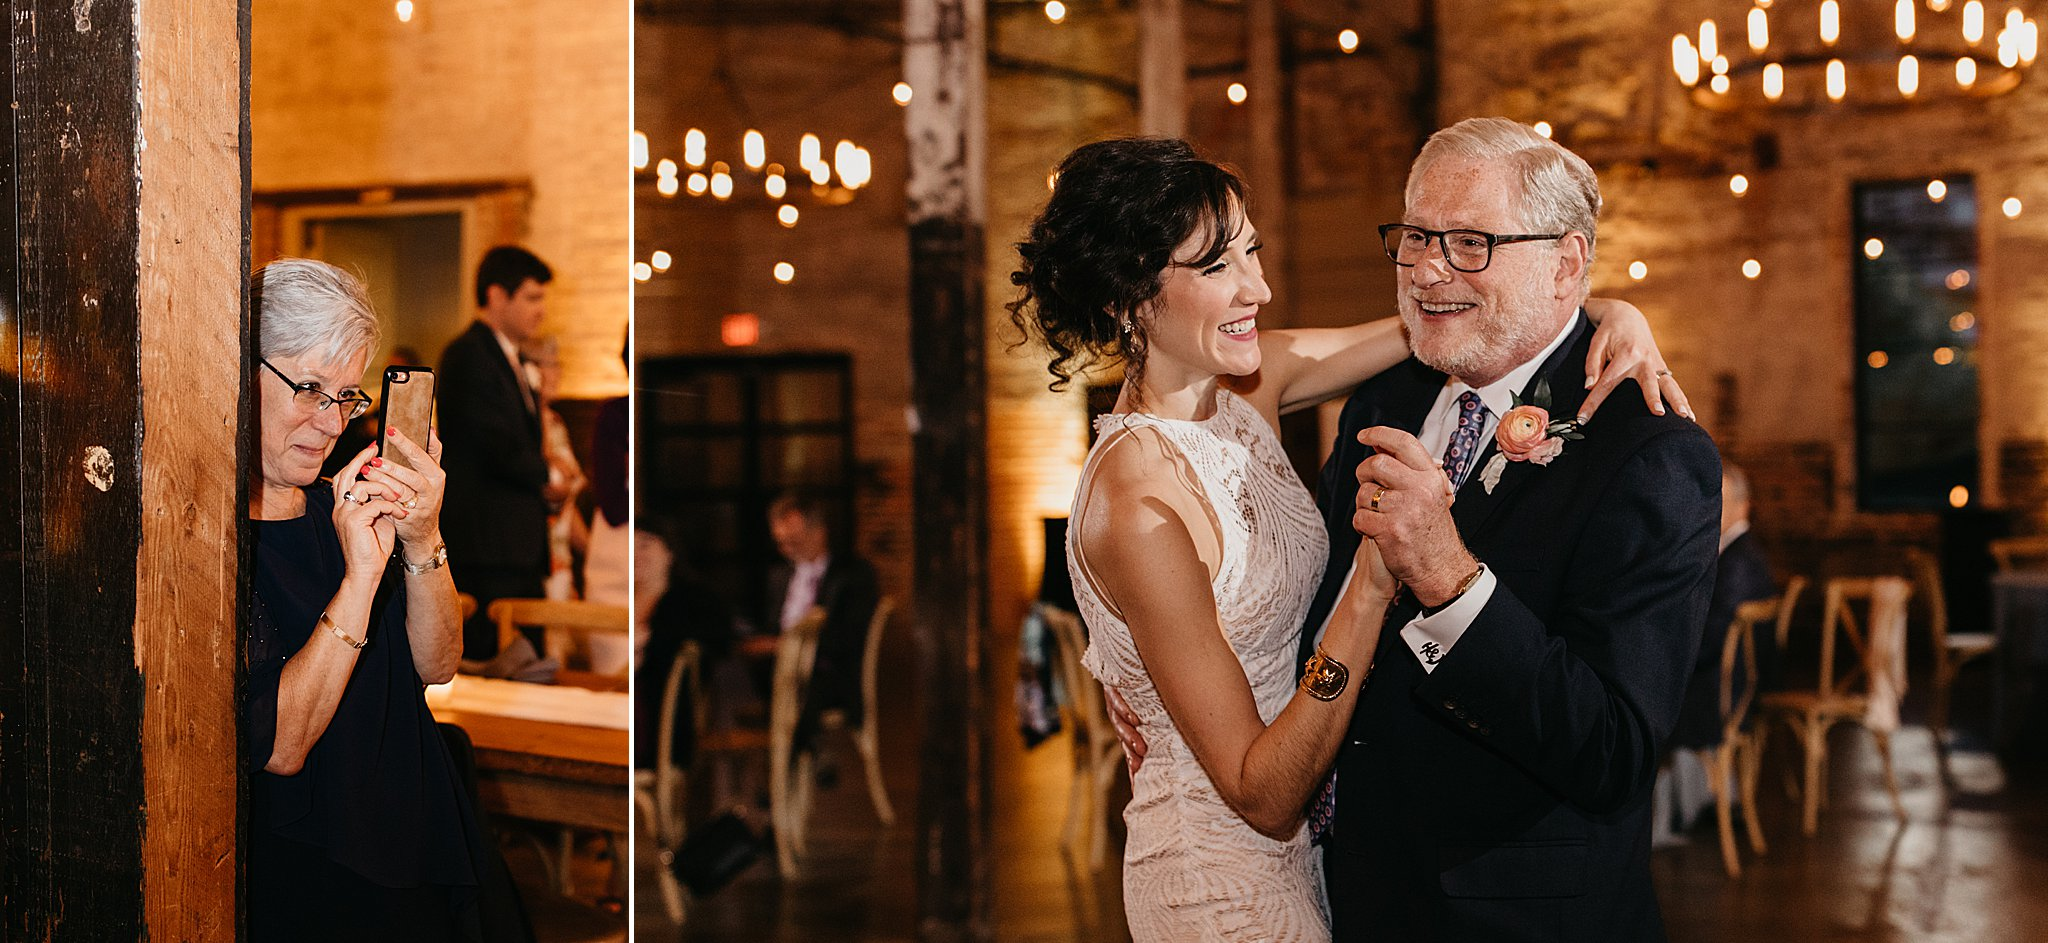 Wilderlove Co_Wedding Photographer_Industrial Wedding_Jewish Wedding_Dallas Texas Wedding_Brake & Clutch Warehouse_North Texas Photographer_0086.jpg